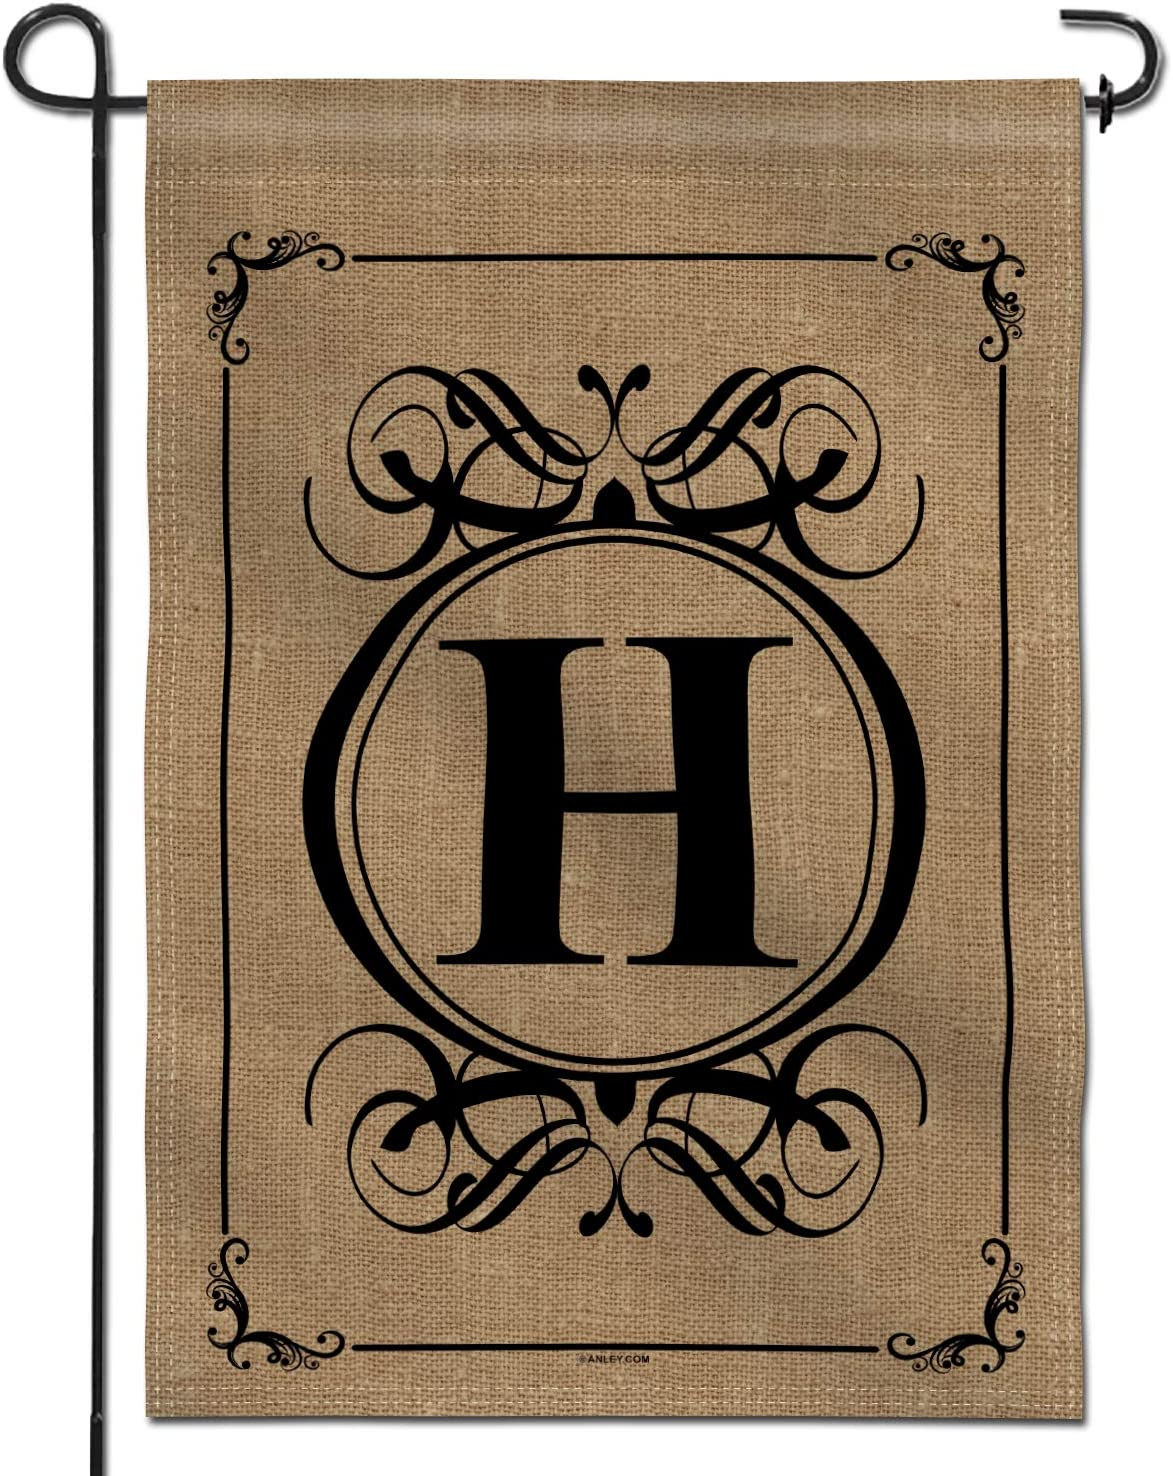 Anley Classic Monogram Letter H Garden Flag, Double Sided Family Last Name Initial Yard Flags - Personalized Welcome Home Decor - Weather Resistant & Double Stitched - 18 x 12.5 Inch